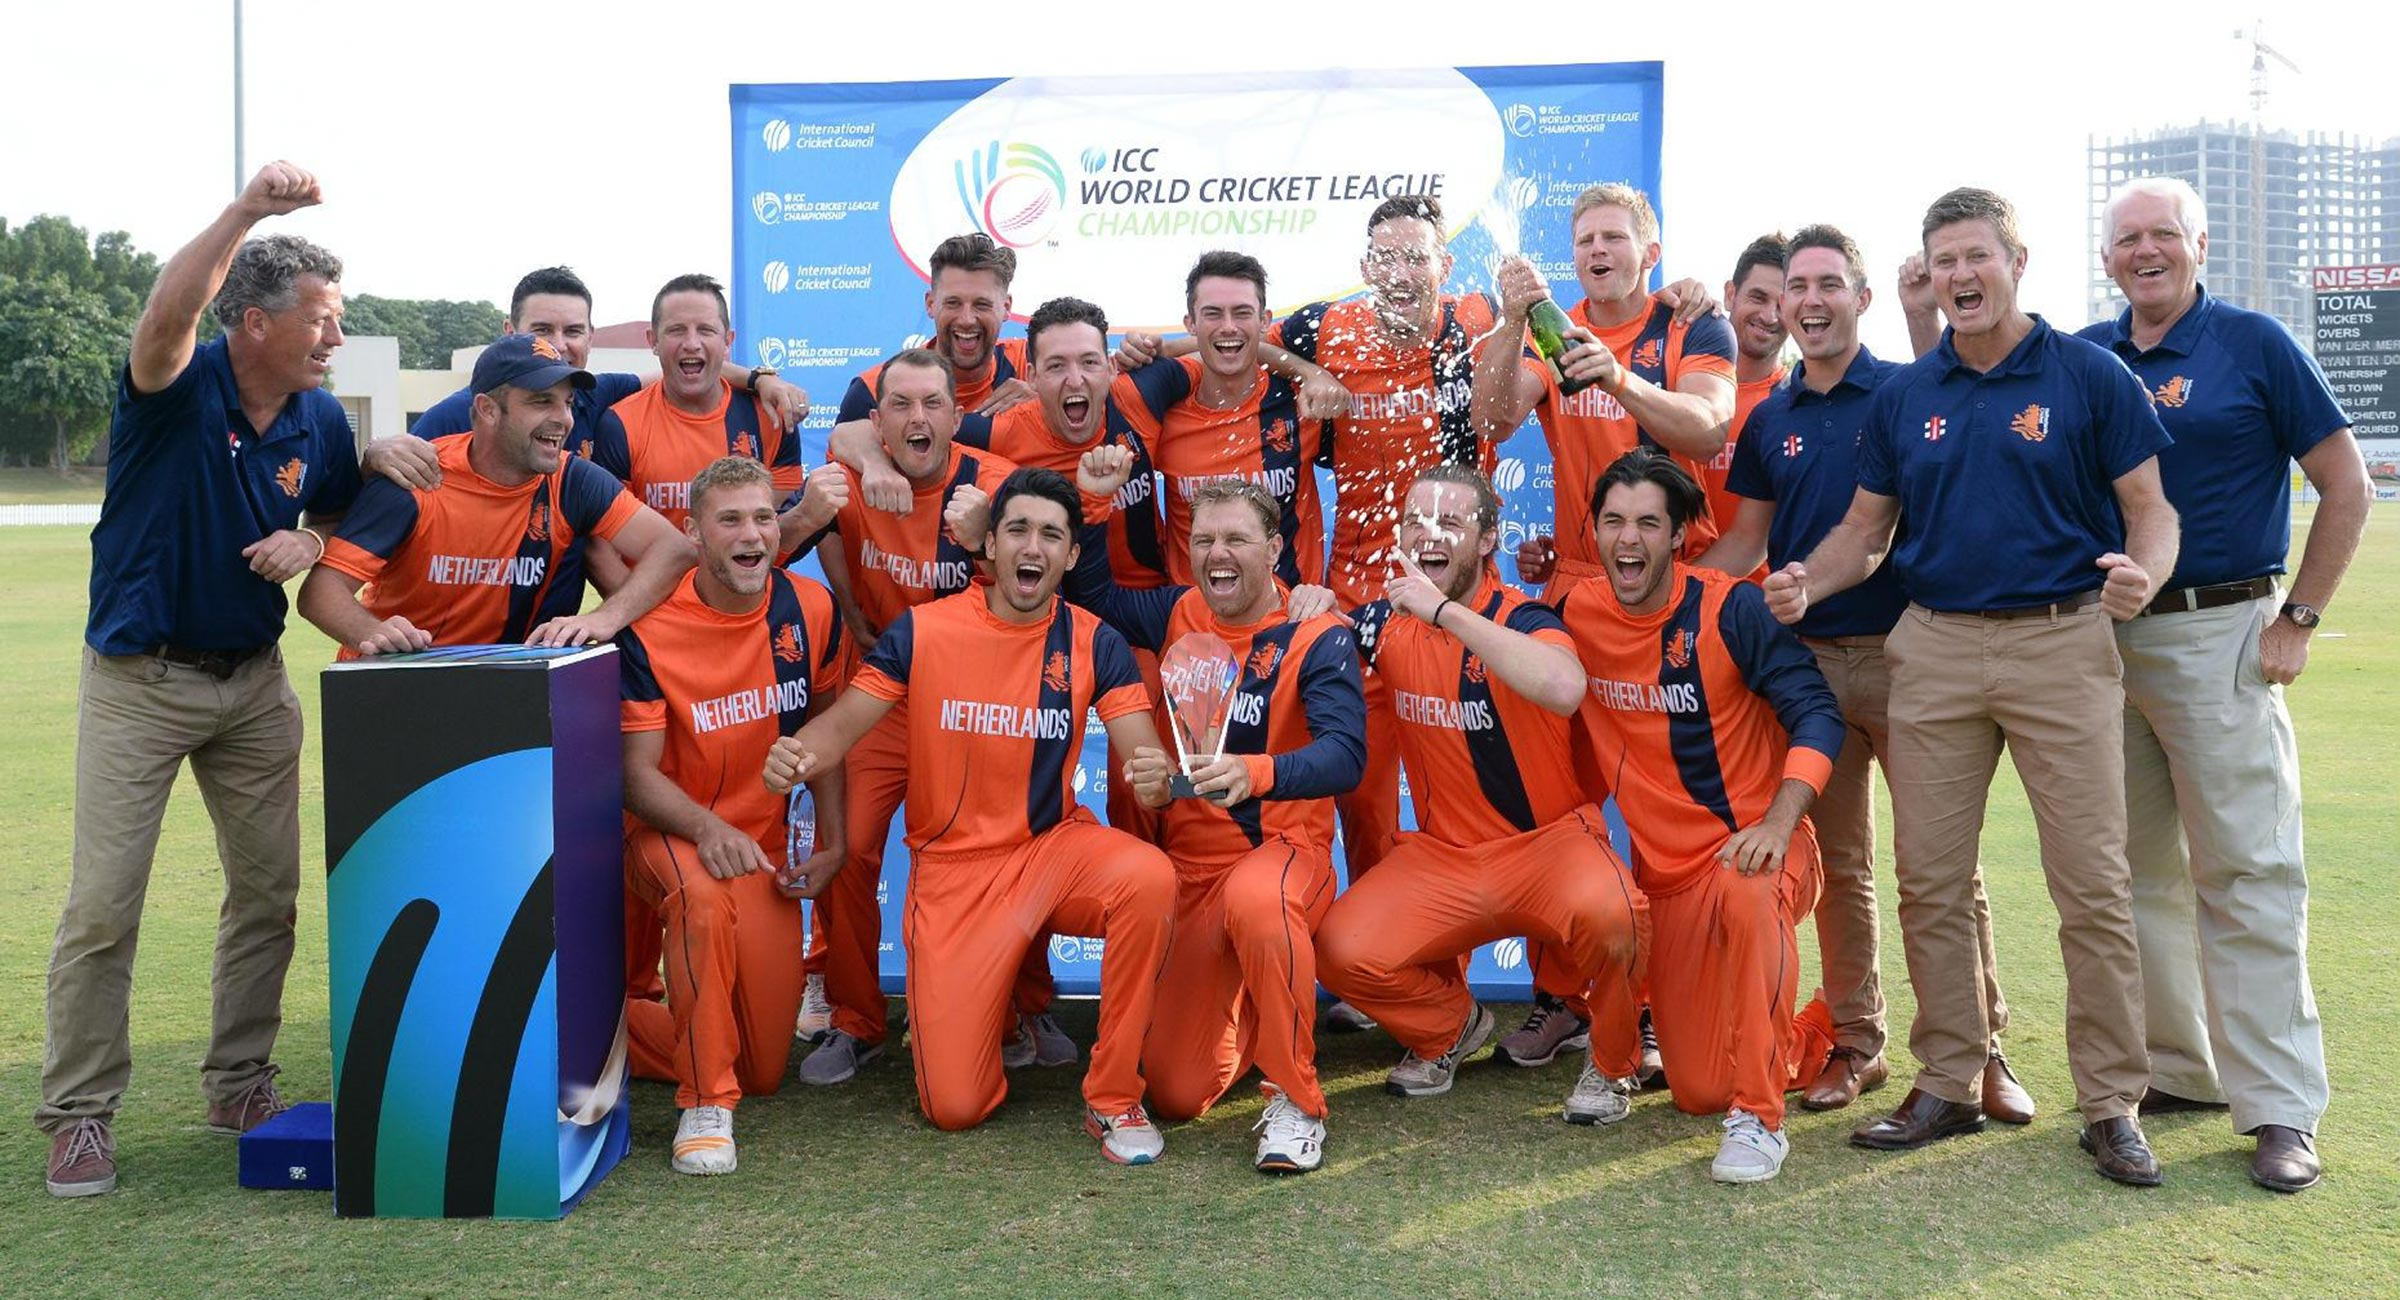 The Netherlands celebrate their World Cricket League title // ICC